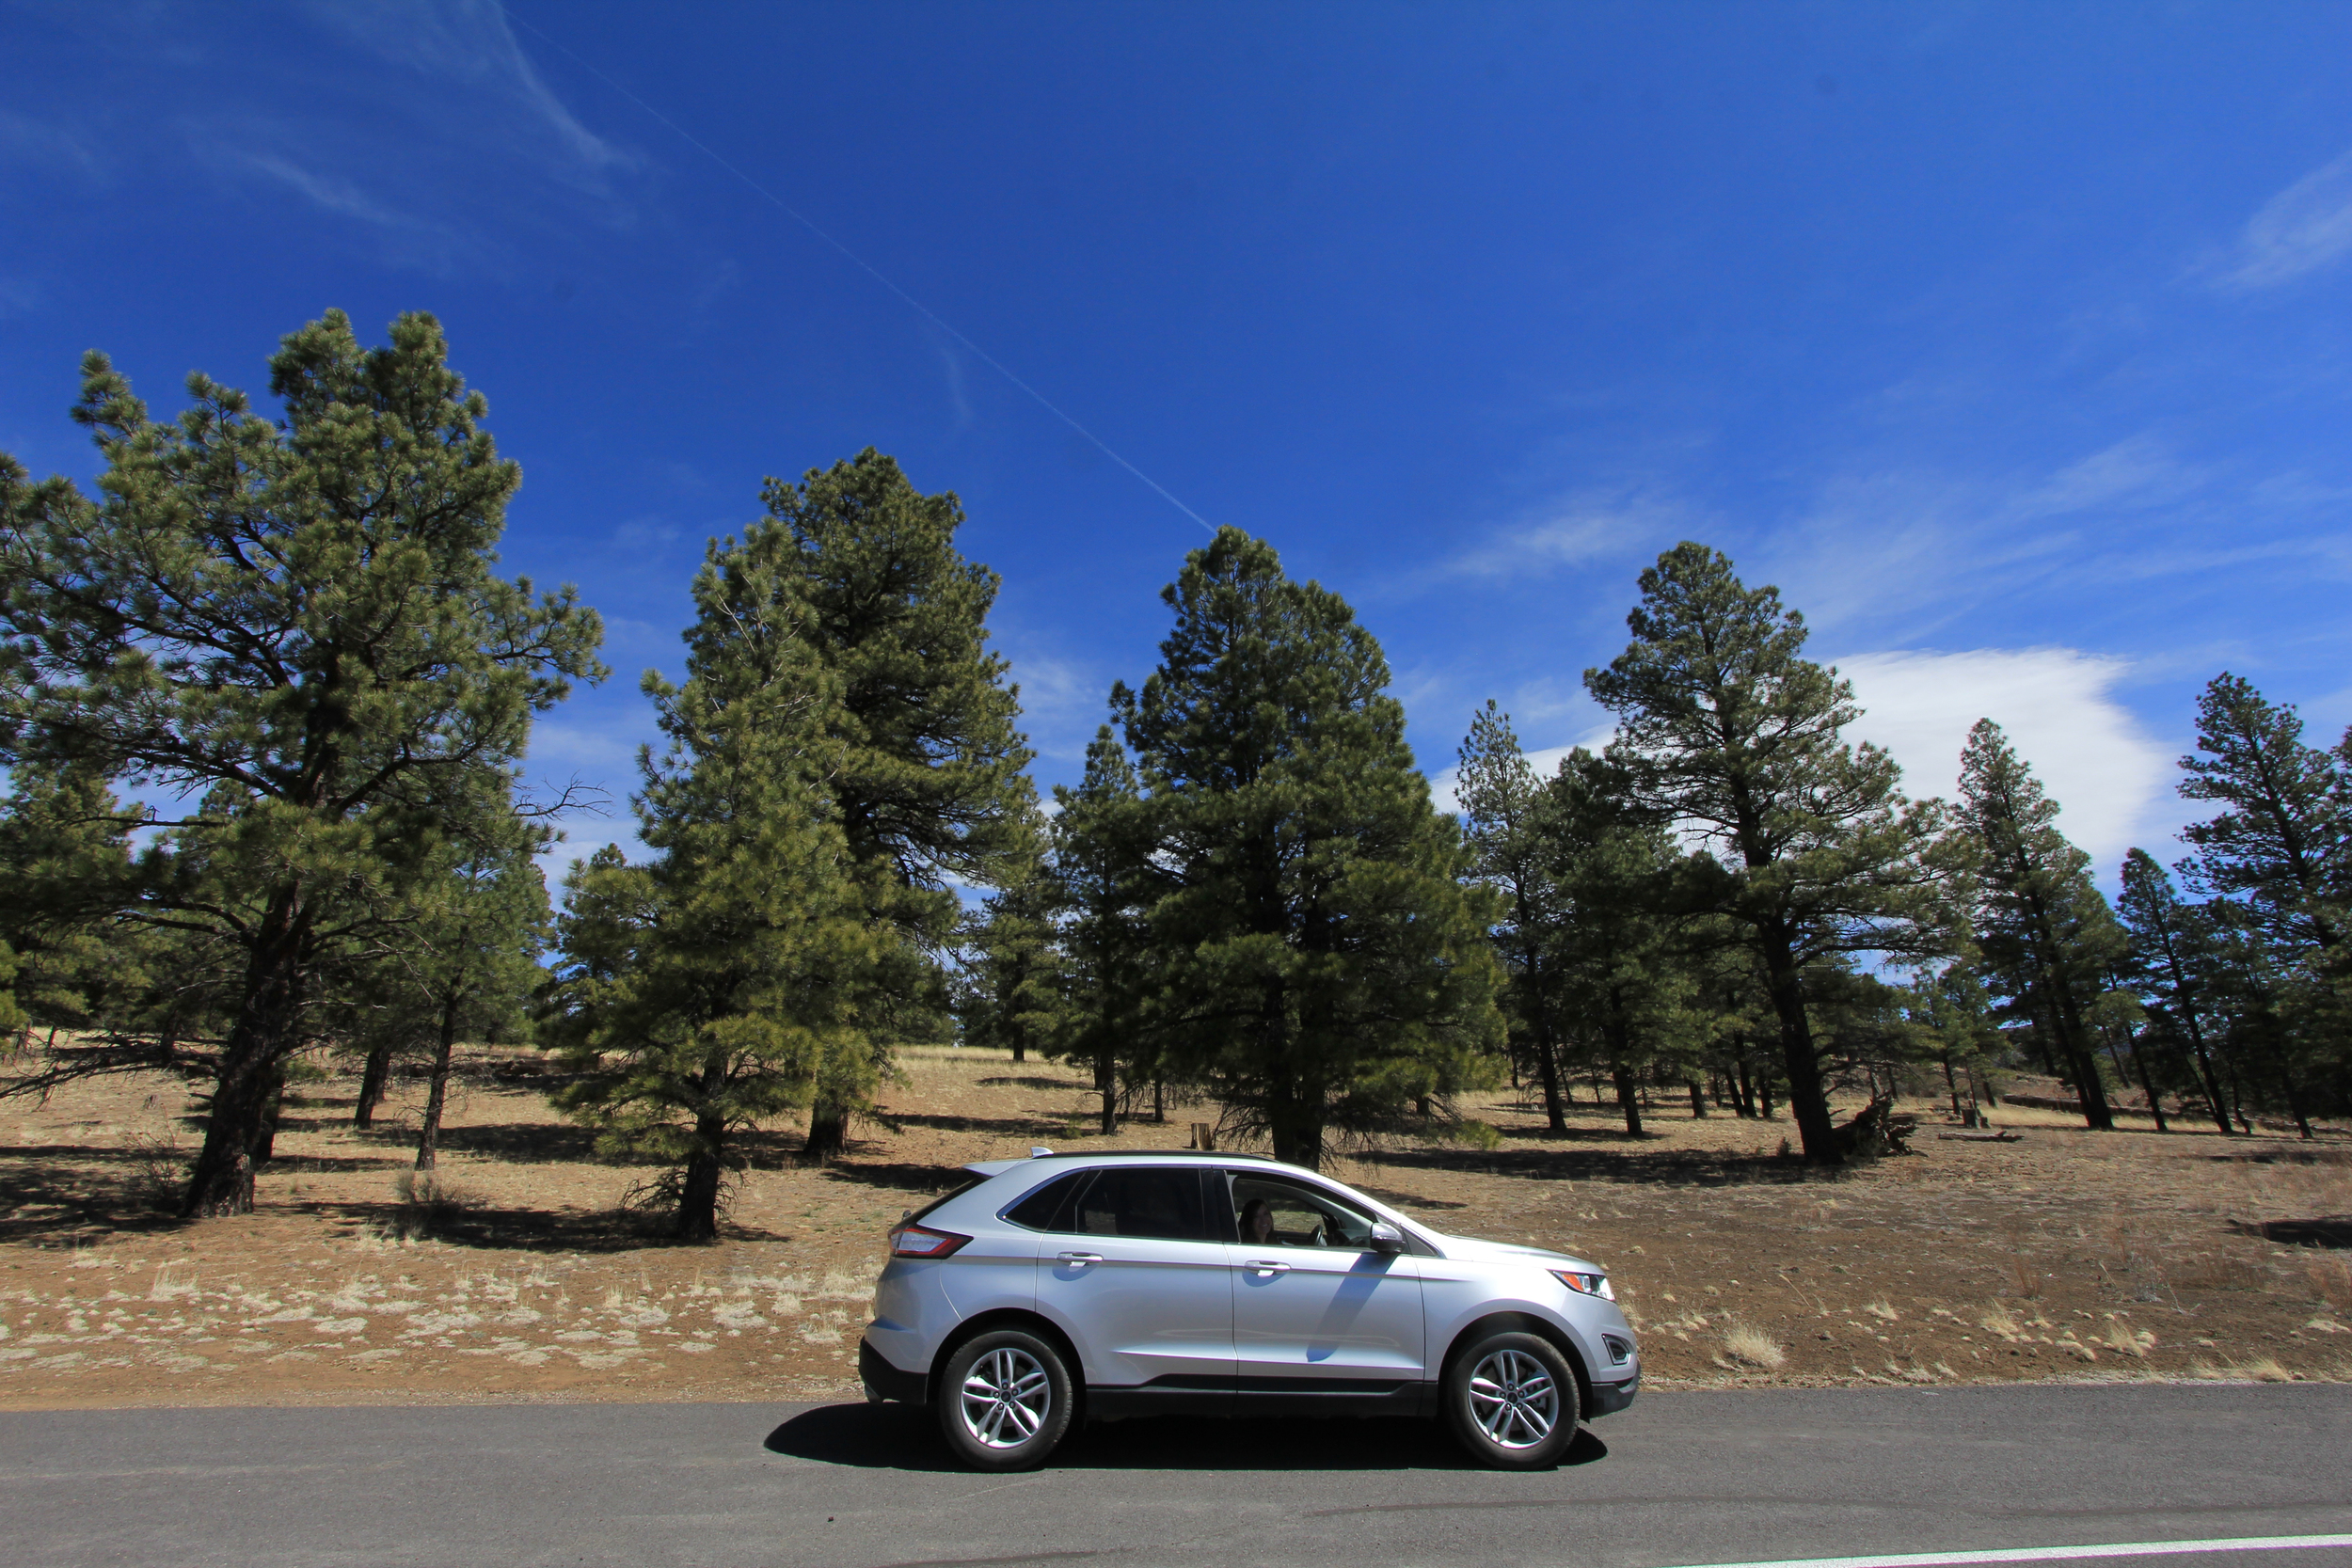 crater mountain, Arizona, Ford Edge, Jon Courville Photography